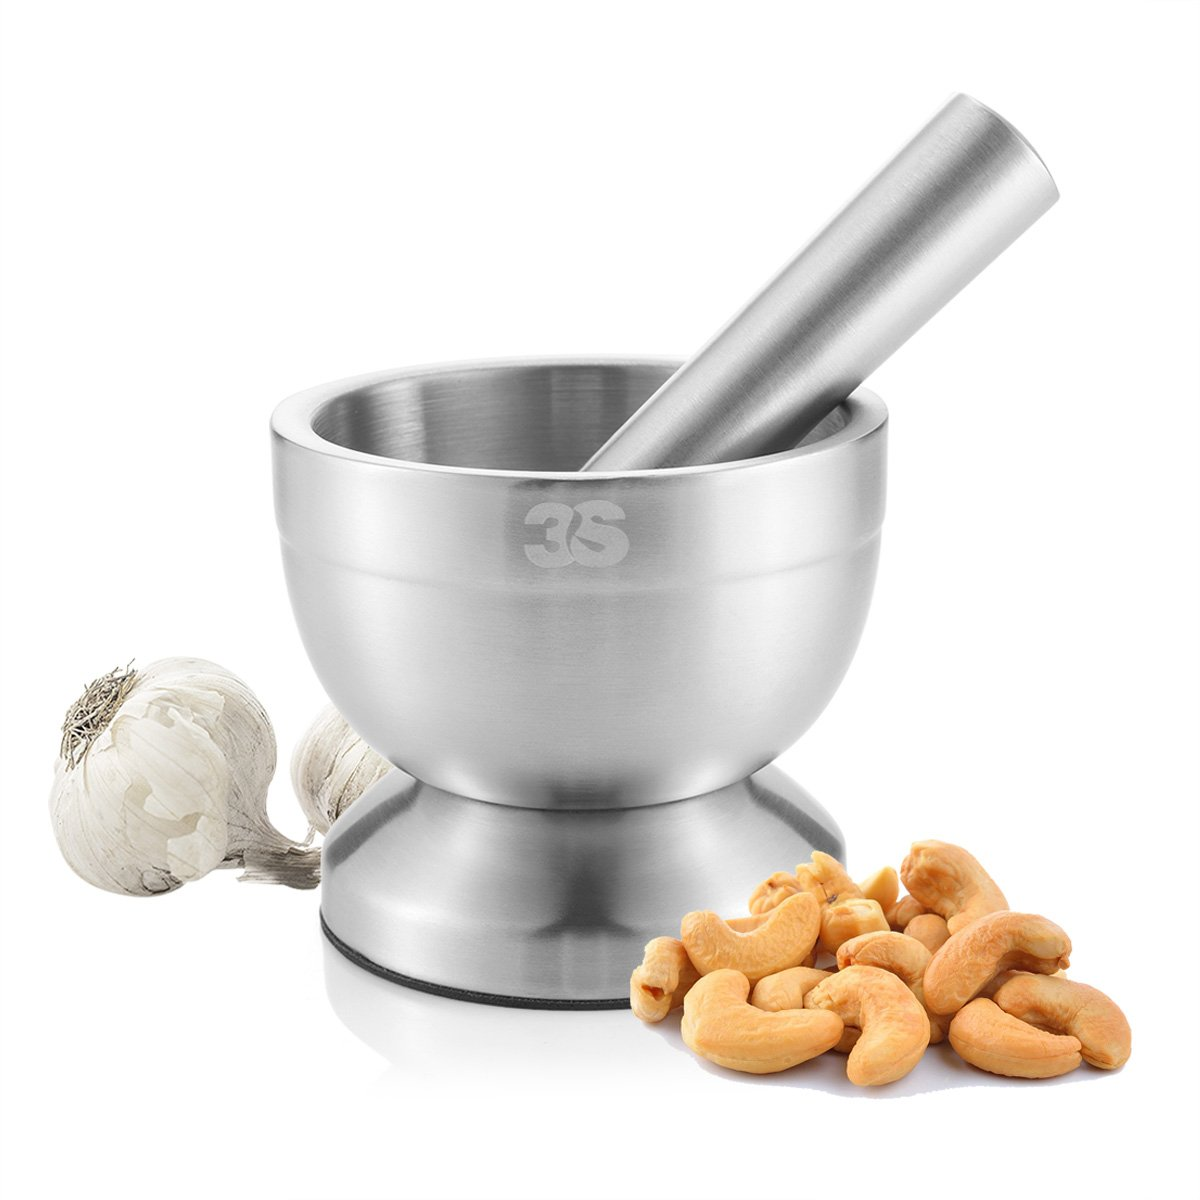 3S Stainless Steel Spice Grinder / Mortar and Pestle Set 3S-B00420